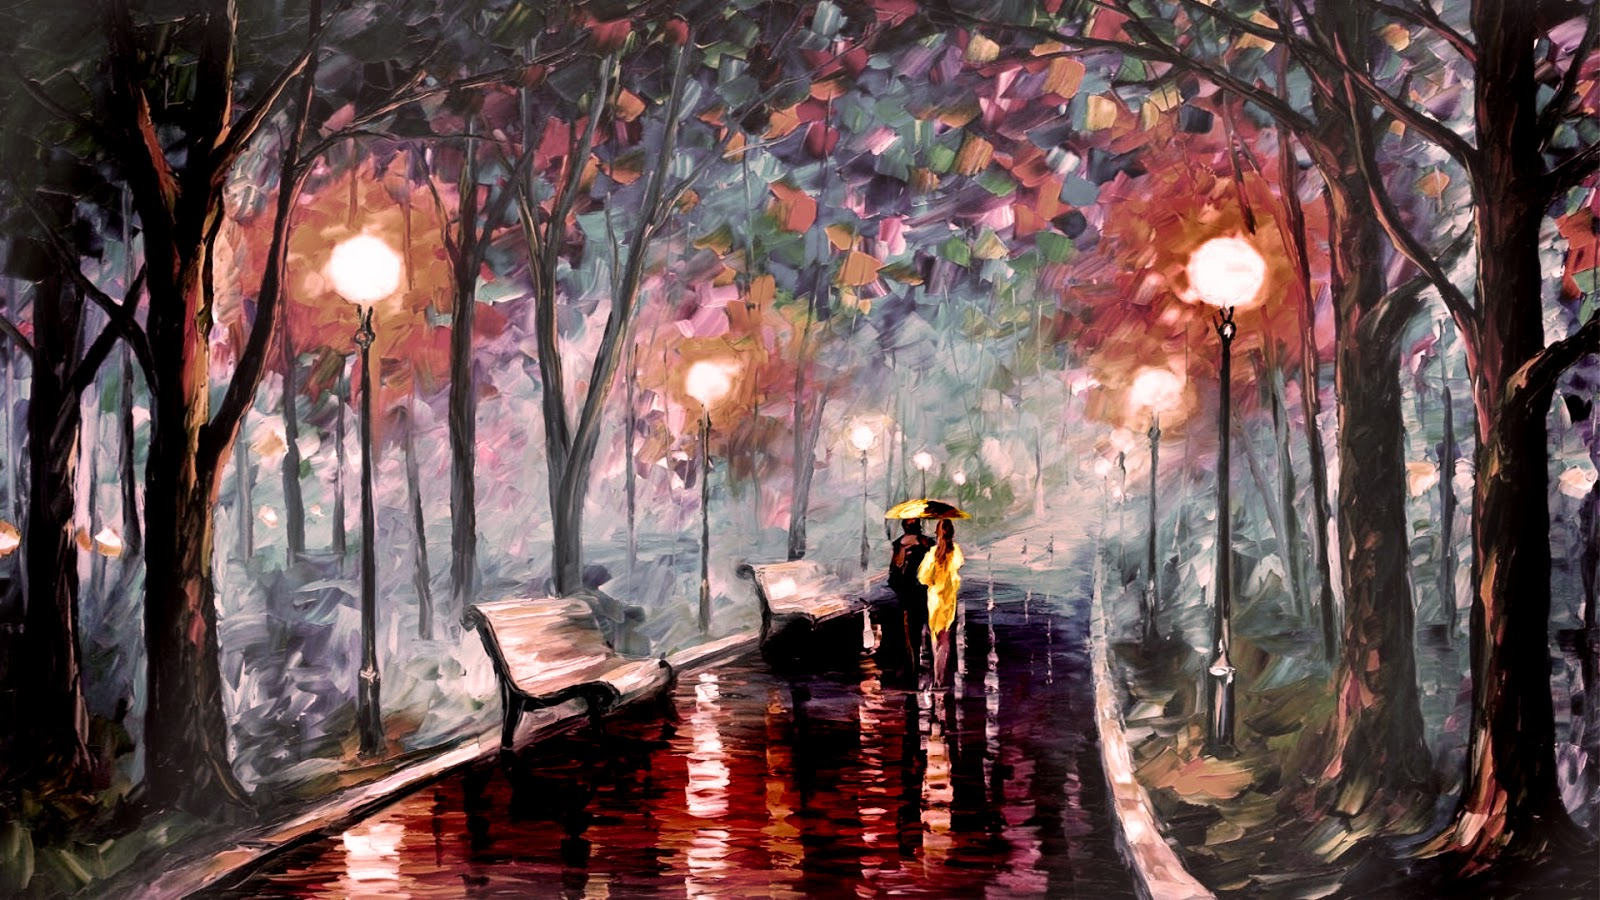 Drawing of a couple on a rainy day holding yellow umbrella